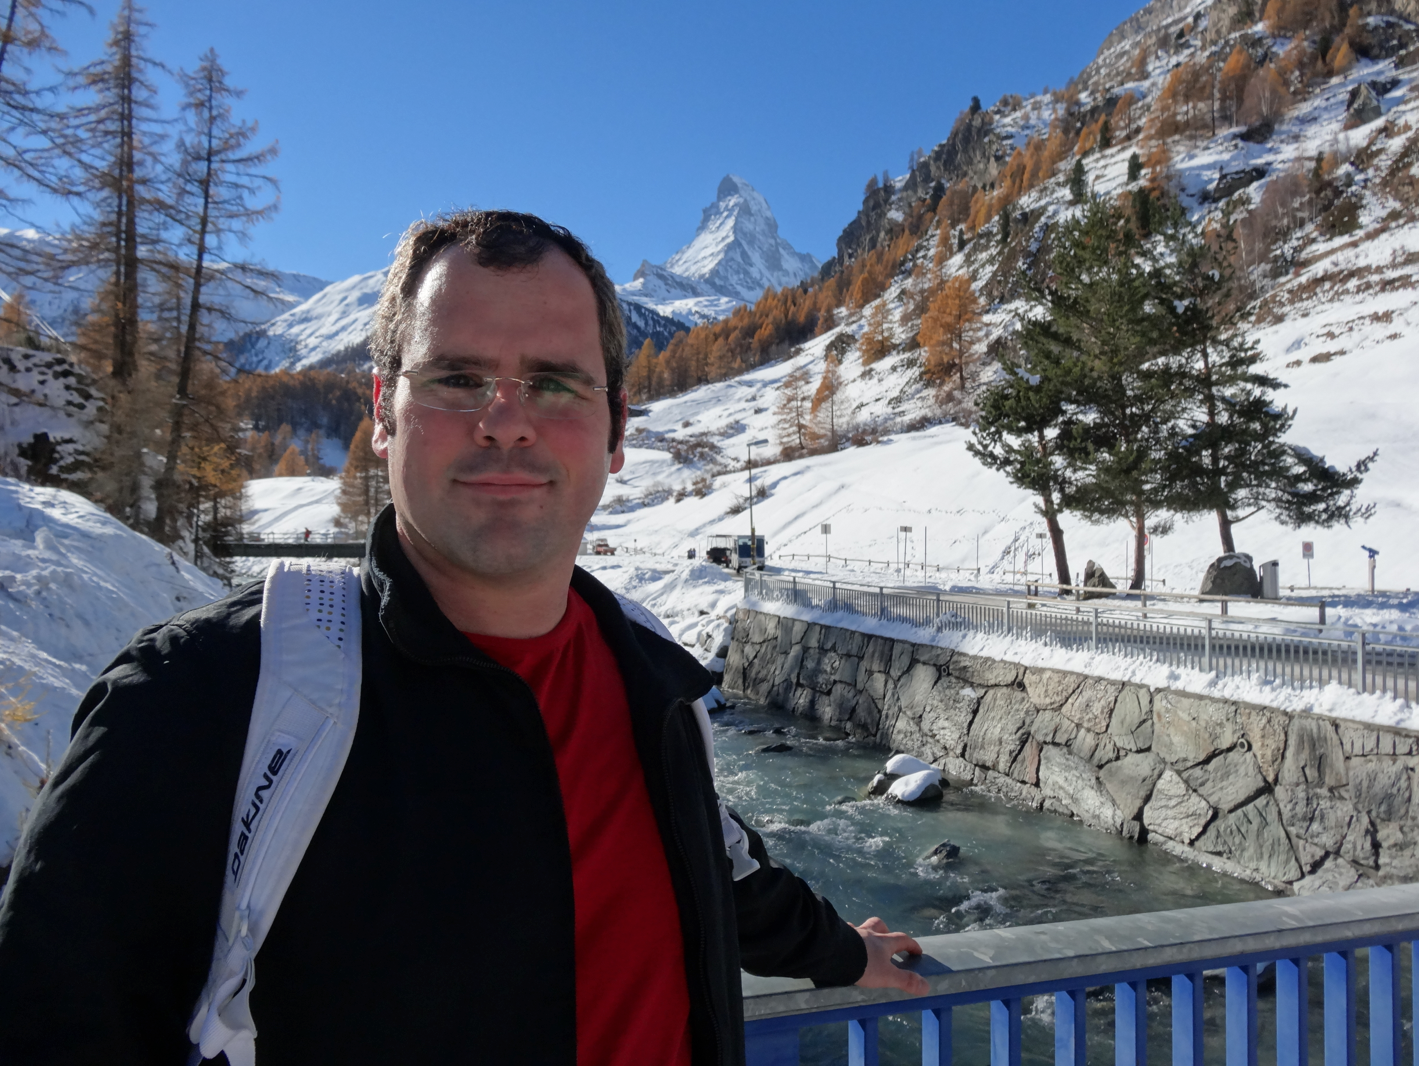 LF catches up with ECQ Blogger Marc Krieger enjoying the last of Switzerlands spectacular winter snows